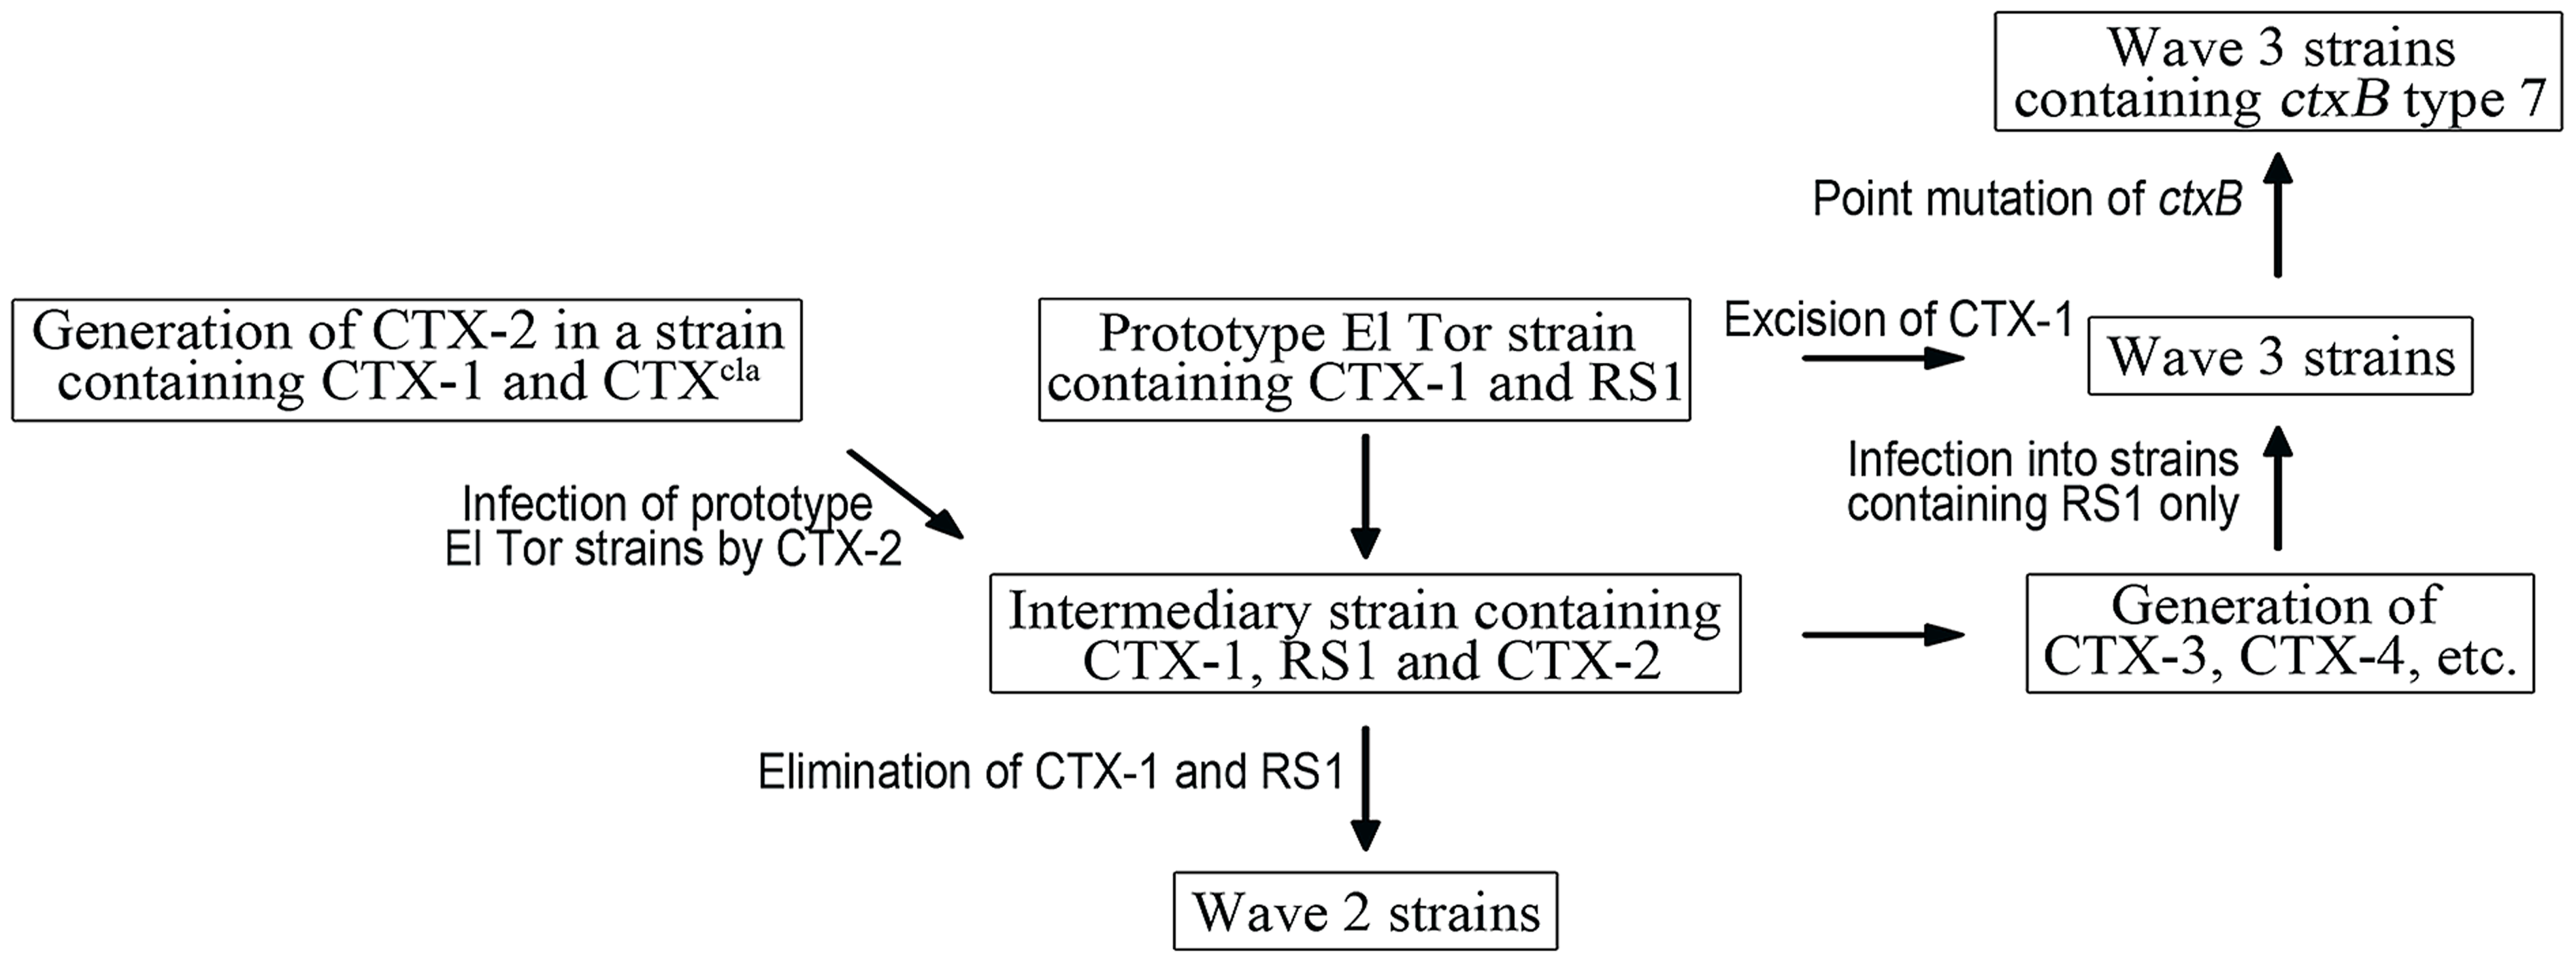 A model of the generation of Wave 2 and Wave 3 strains.